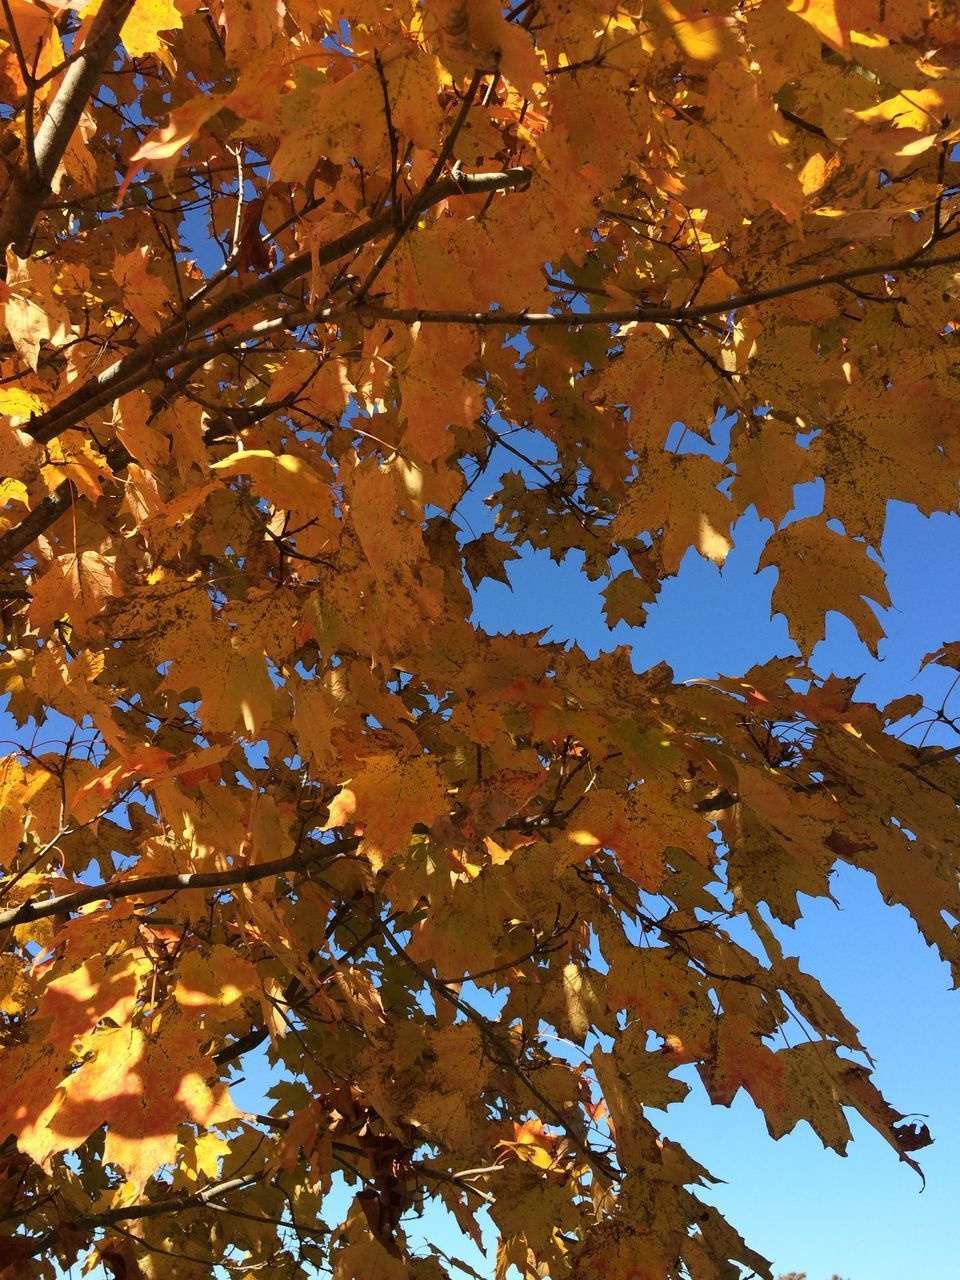 leaf, plant part, tree, autumn, branch, plant, change, low angle view, beauty in nature, growth, nature, no people, day, maple leaf, leaves, tranquility, sky, outdoors, maple tree, backgrounds, natural condition, fall